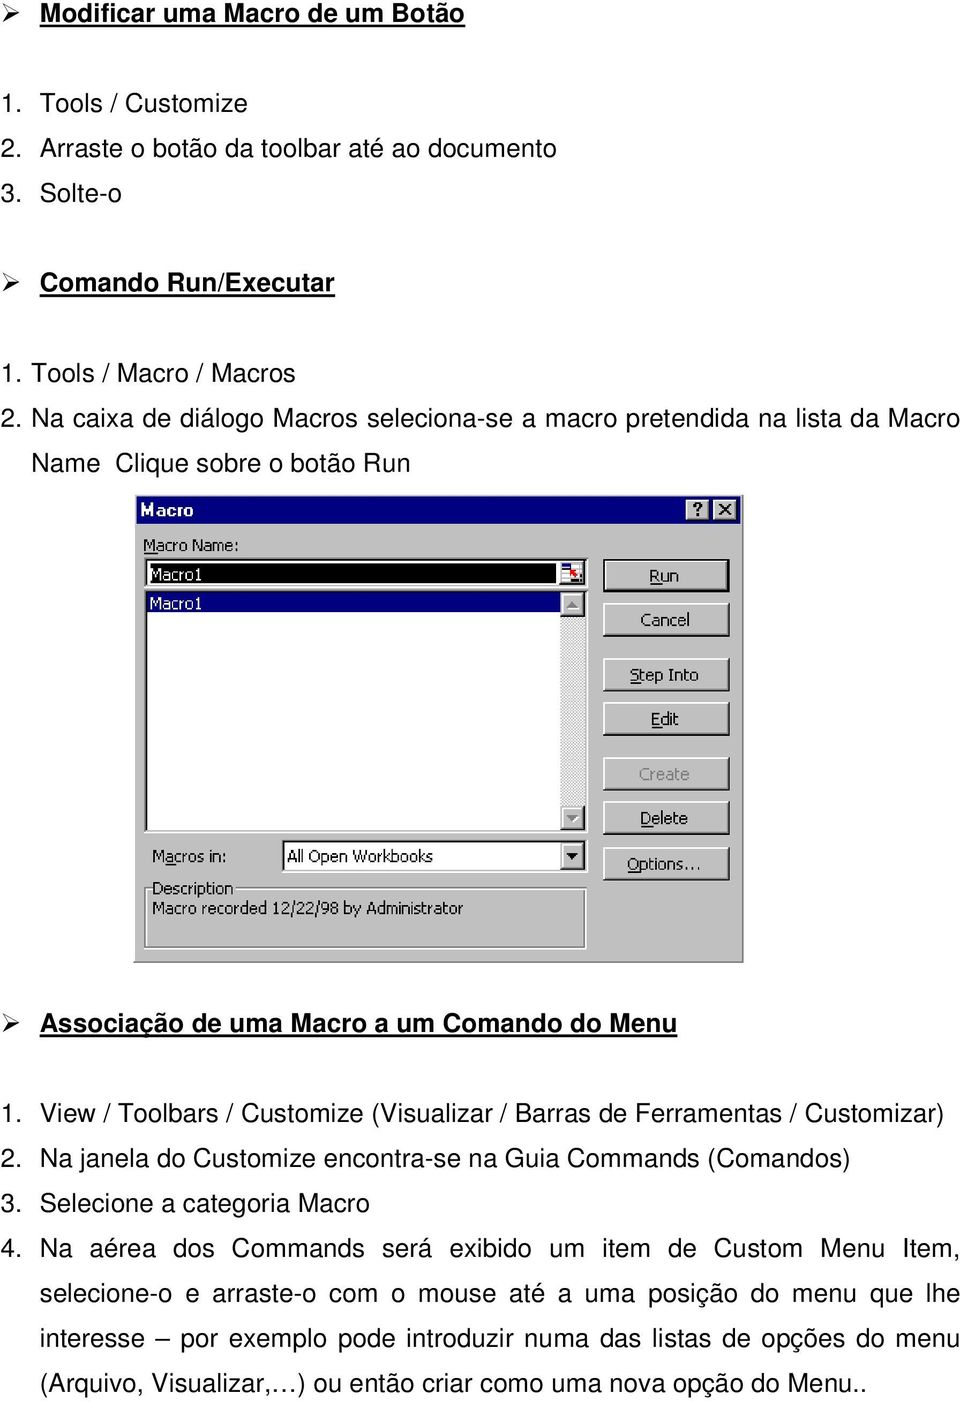 View / Toolbars / Customize (Visualizar / Barras de Ferramentas / Customizar) 2. Na janela do Customize encontra-se na Guia Commands (Comandos) 3. Selecione a categoria Macro 4.